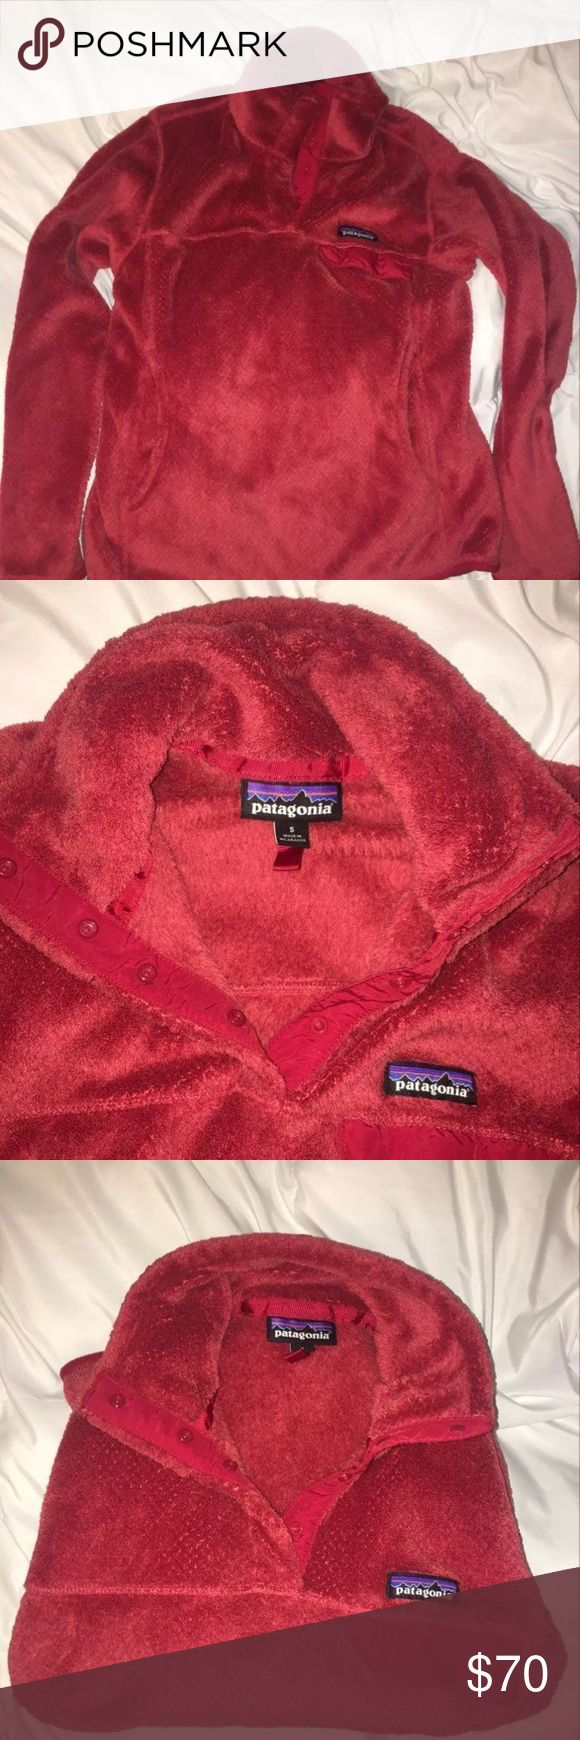 Patagonia Re-Tool sweater Sz small Practically brand new, bought it from Patagonia and wore it once before I grew out of it. It's in perfect condition. Color is Red, and is size small. Comes from a smoke and pet free home. Retail price $119 Patagonia Sweaters